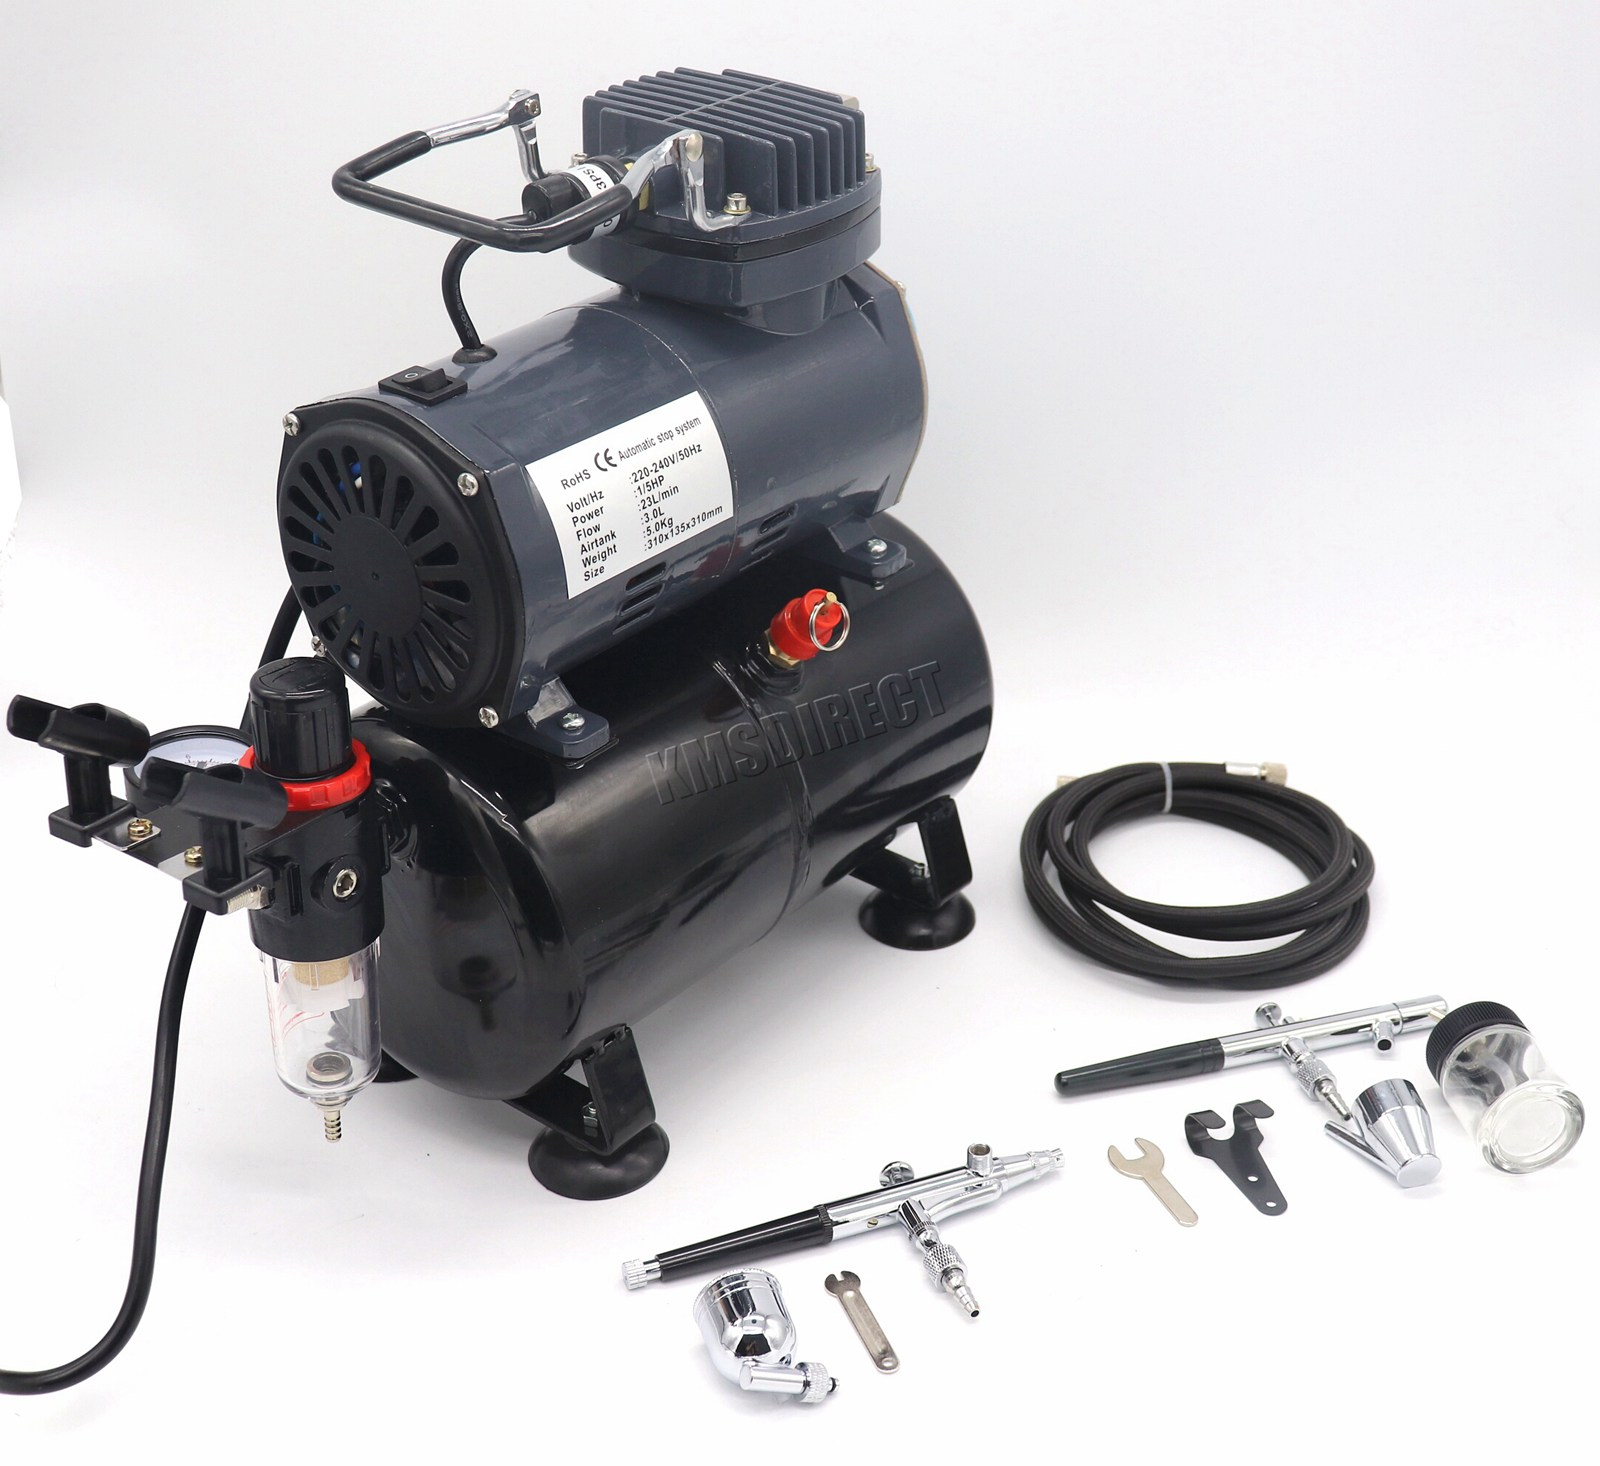 Details about Switzer Double Action Airbrush Kit + Compressor With Tank  AS186 Paint Nail Tatoo